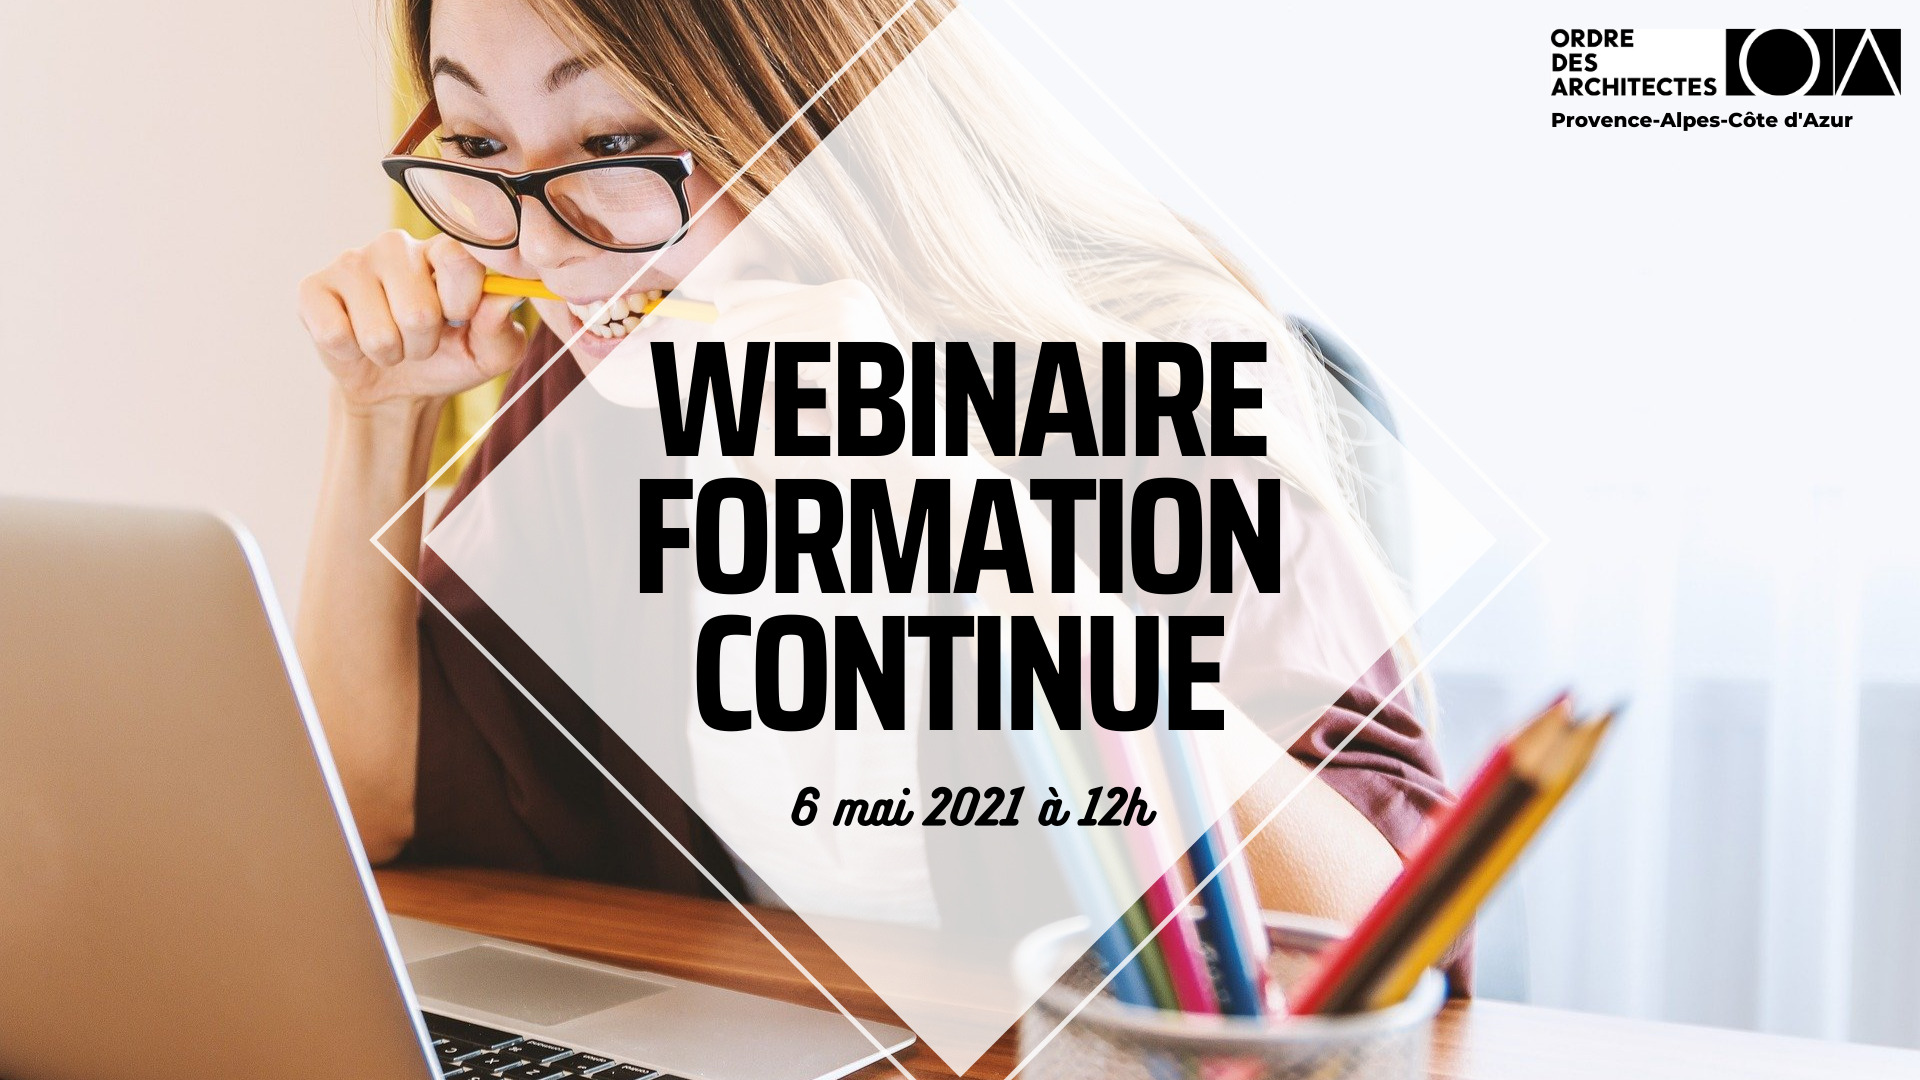 Webinaire formation continue 6 mai 2021.png